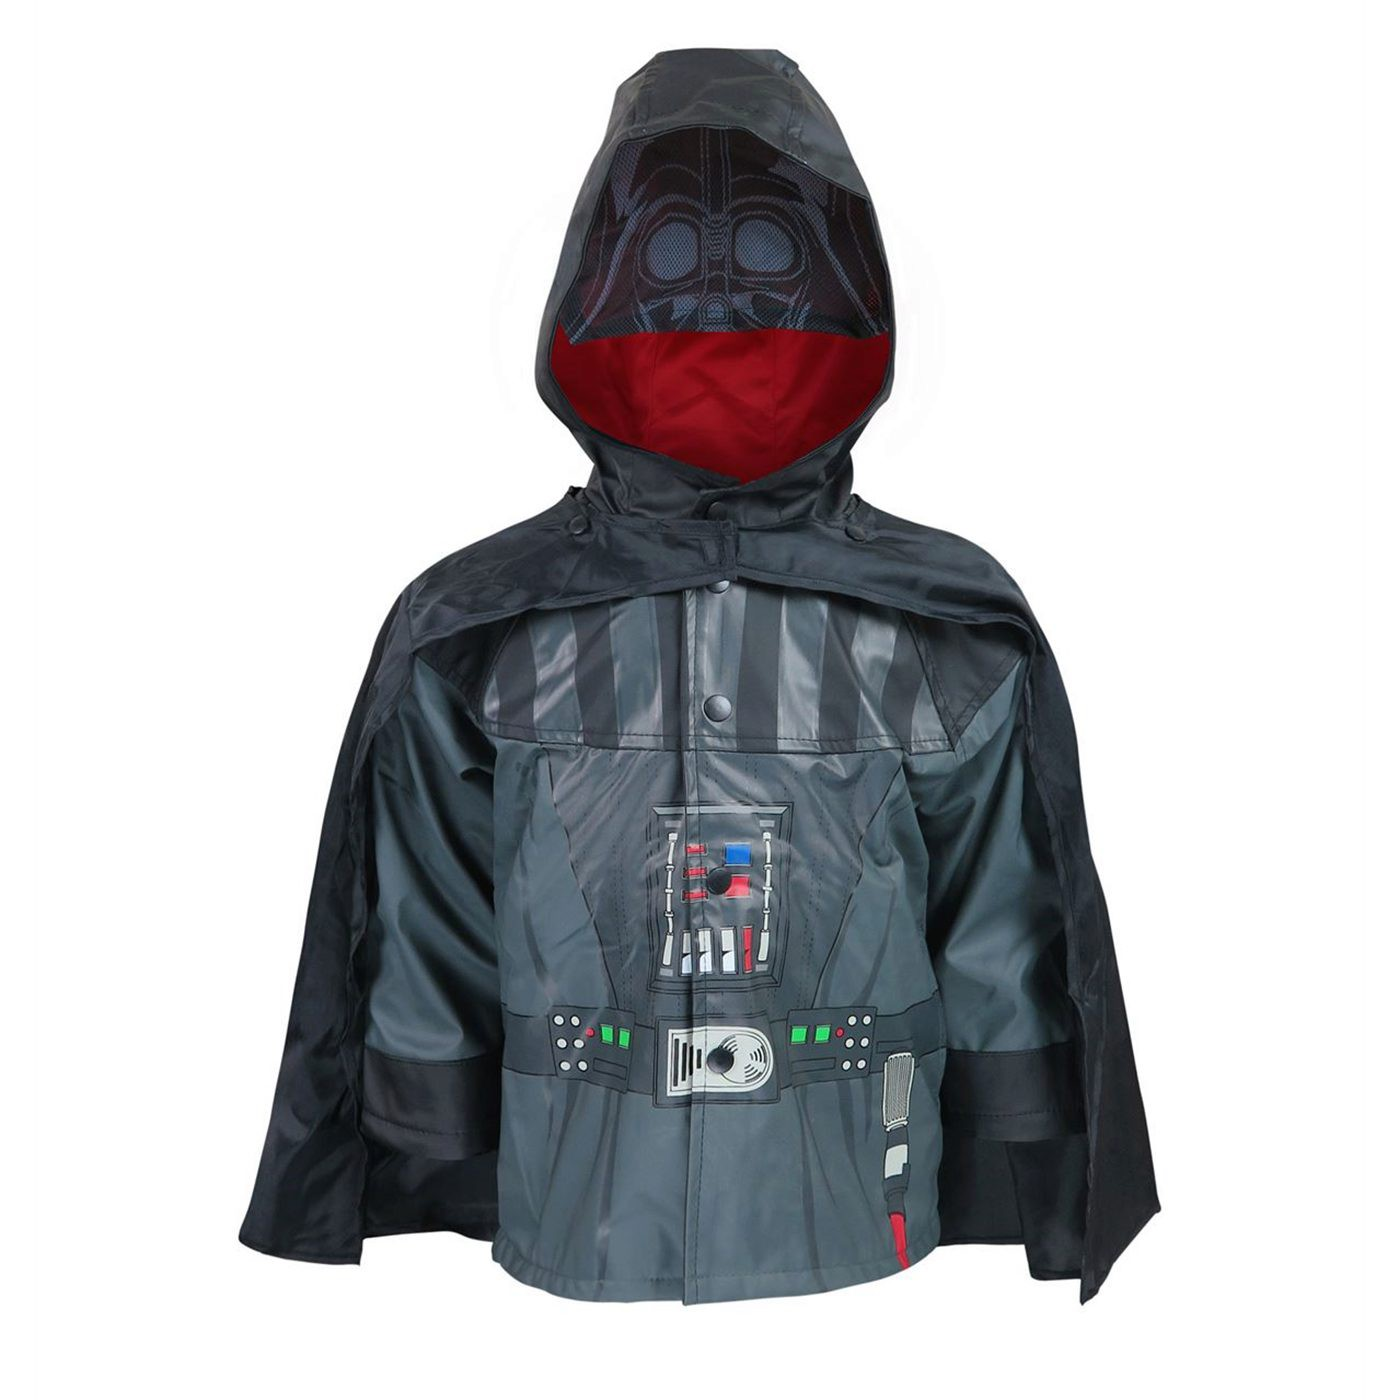 Star Wars Darth Vader Kids Rain Coat